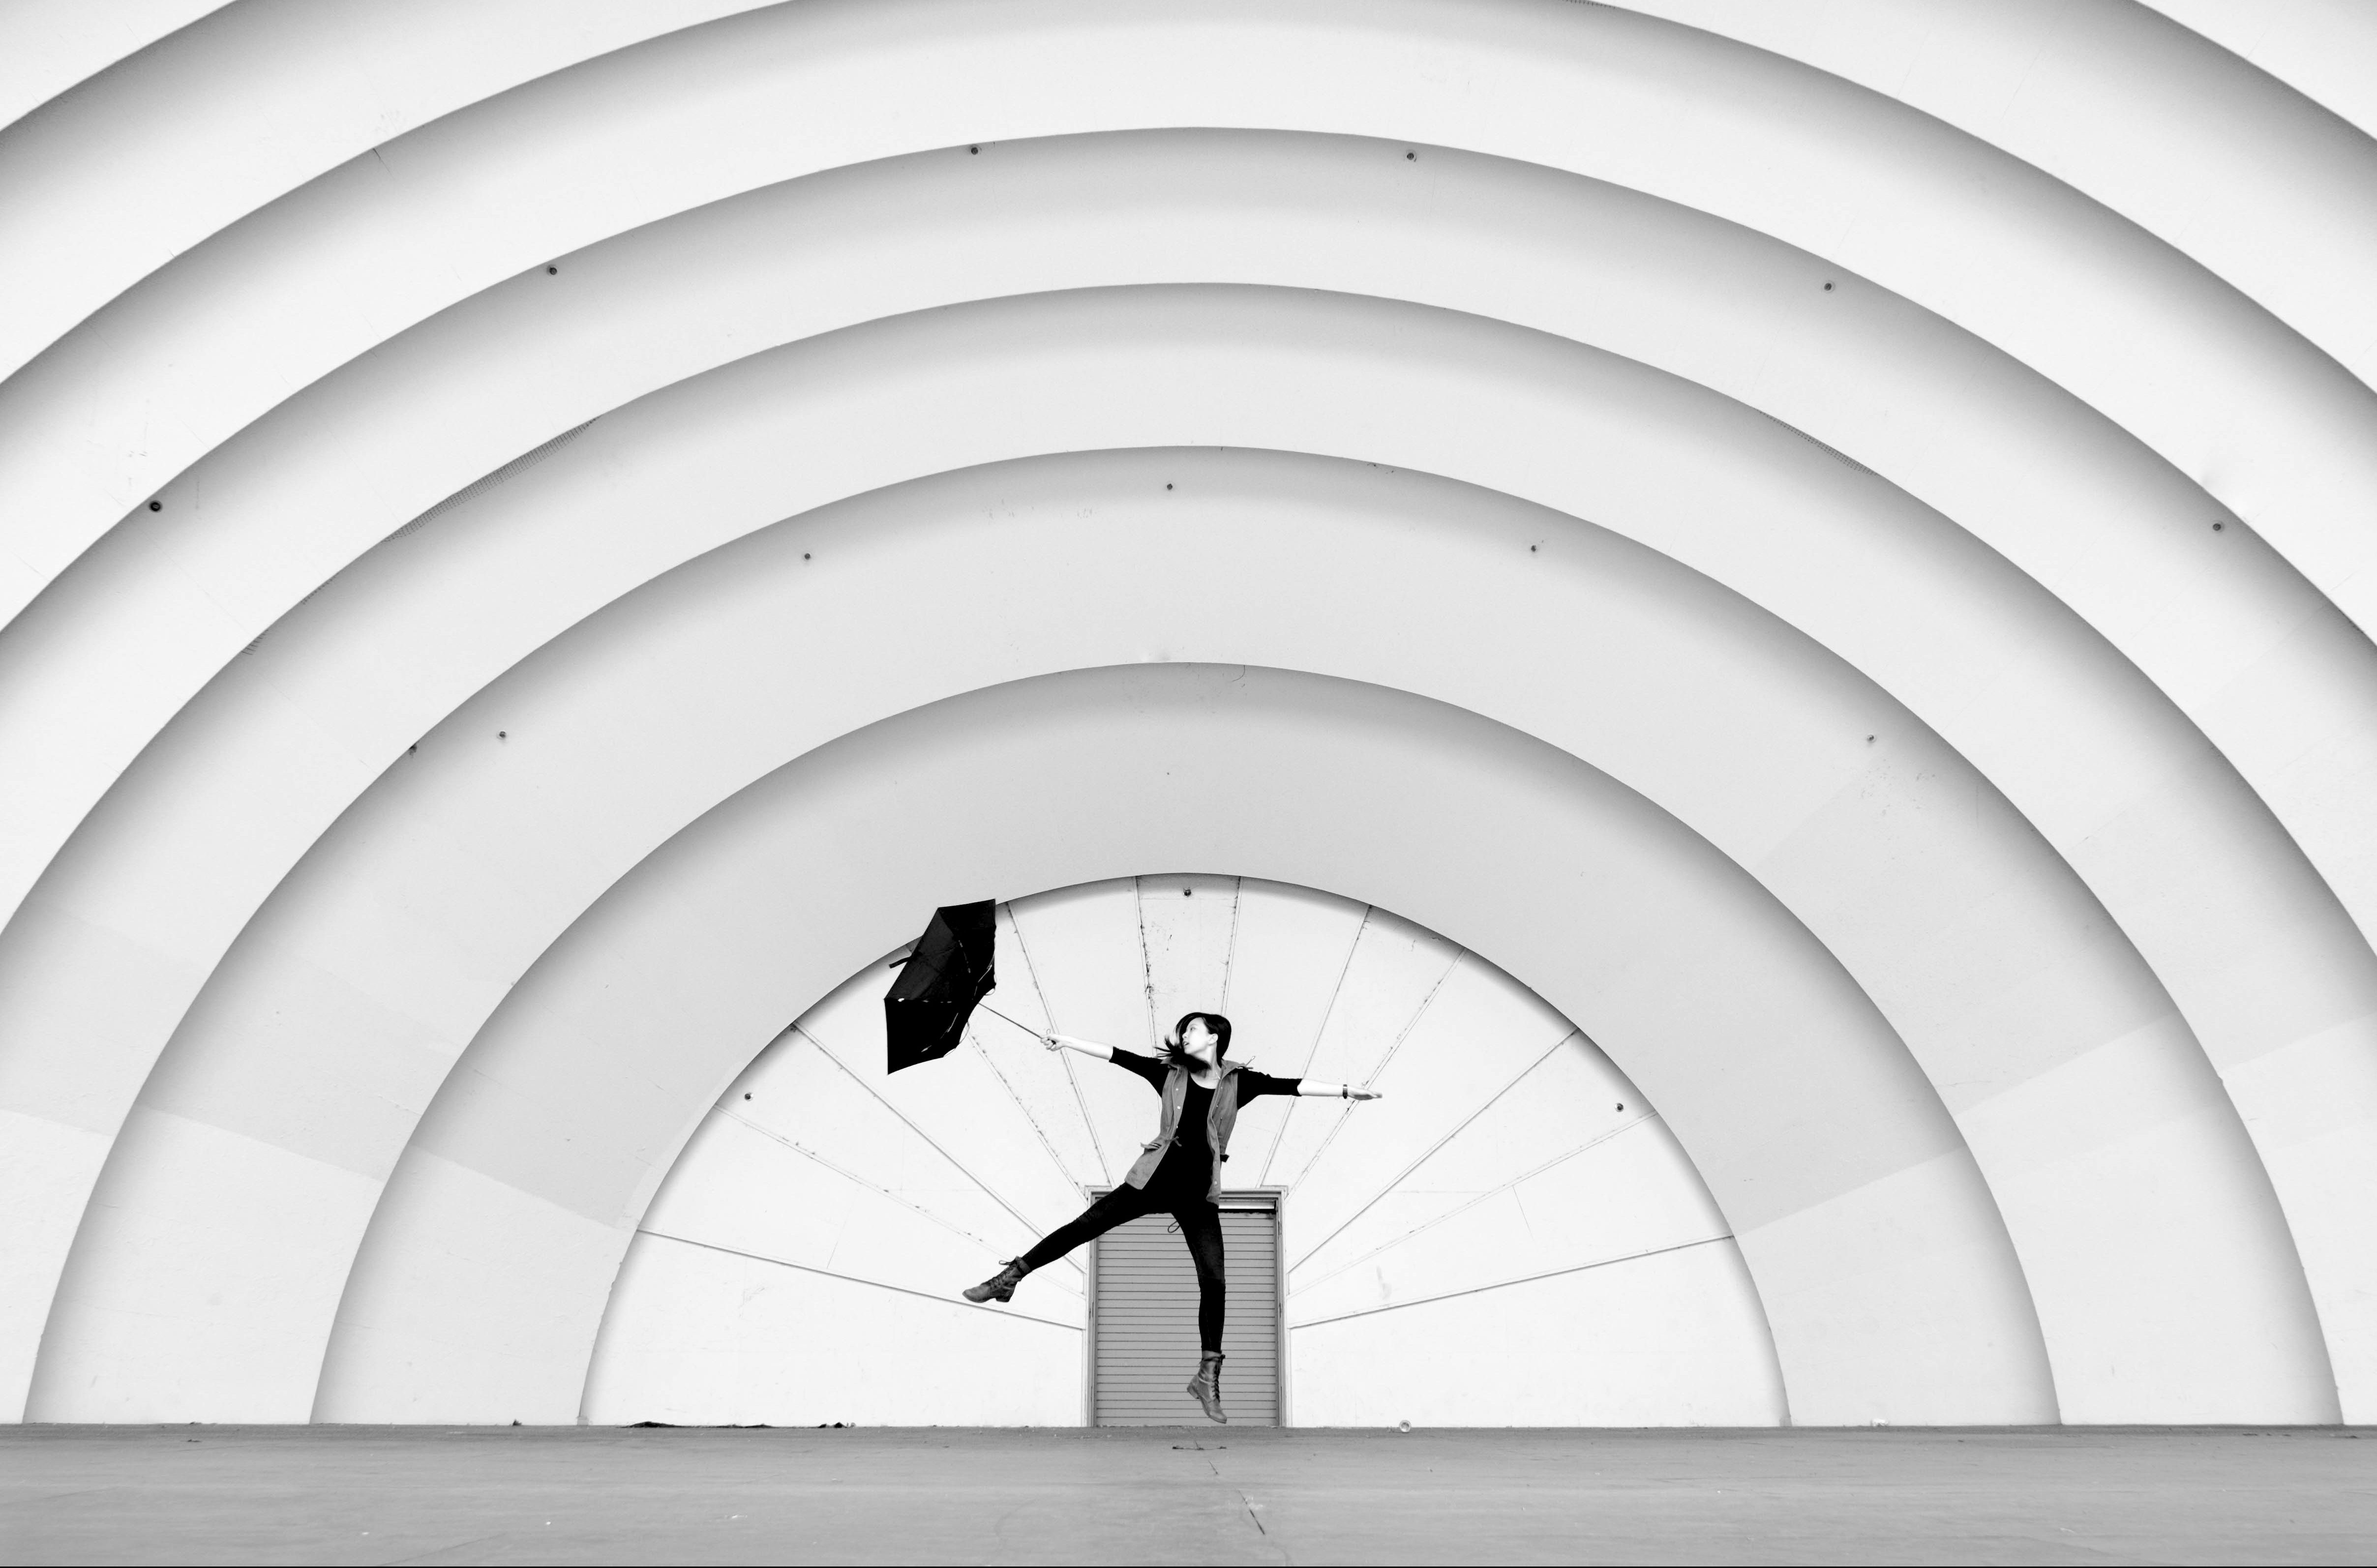 Person with umbrella jumping in front of a building